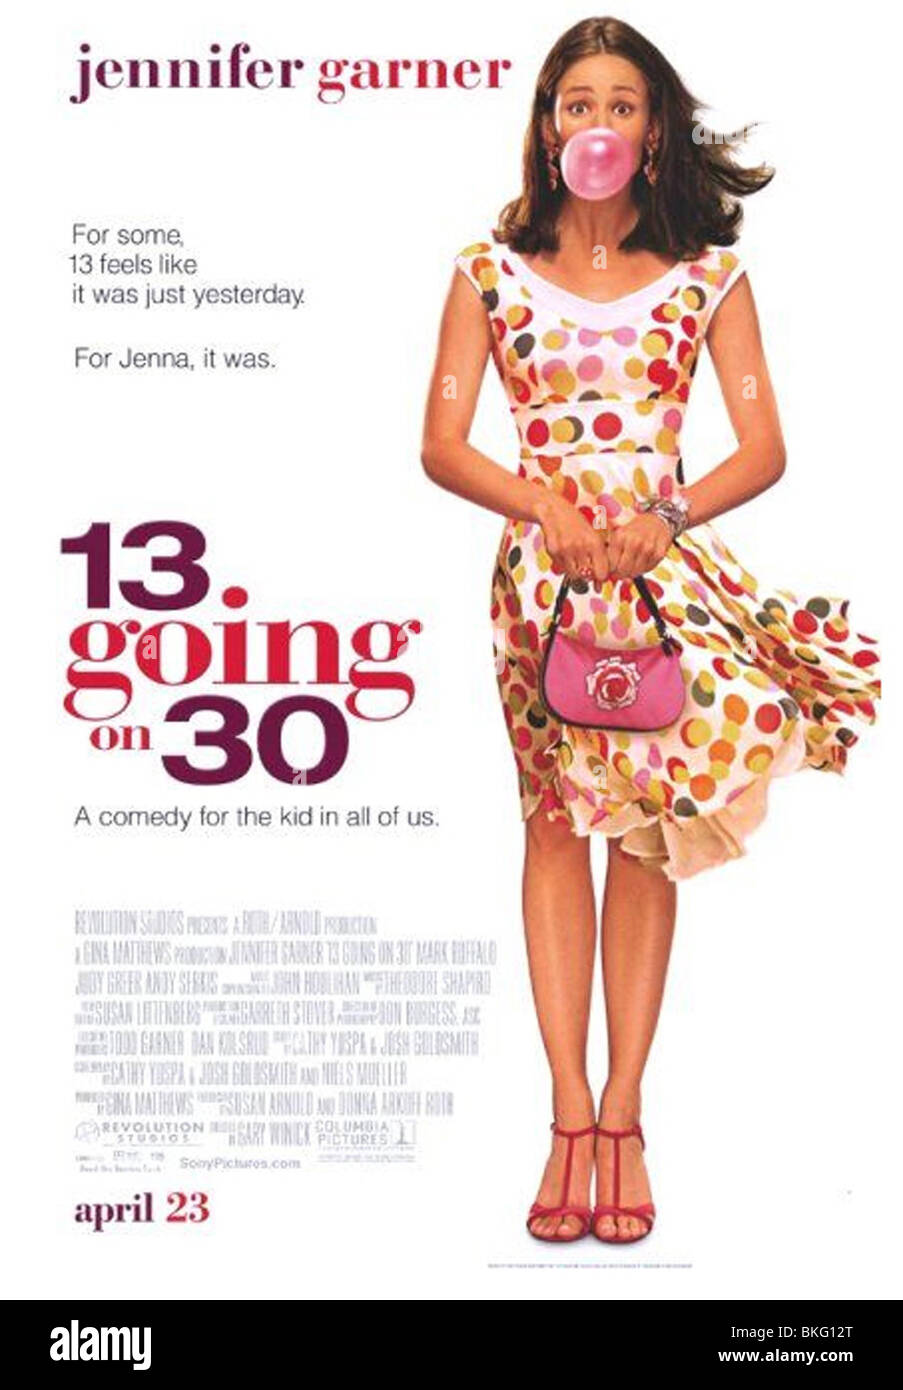 13 GOING ON 30 -2004 POSTER - Stock Image